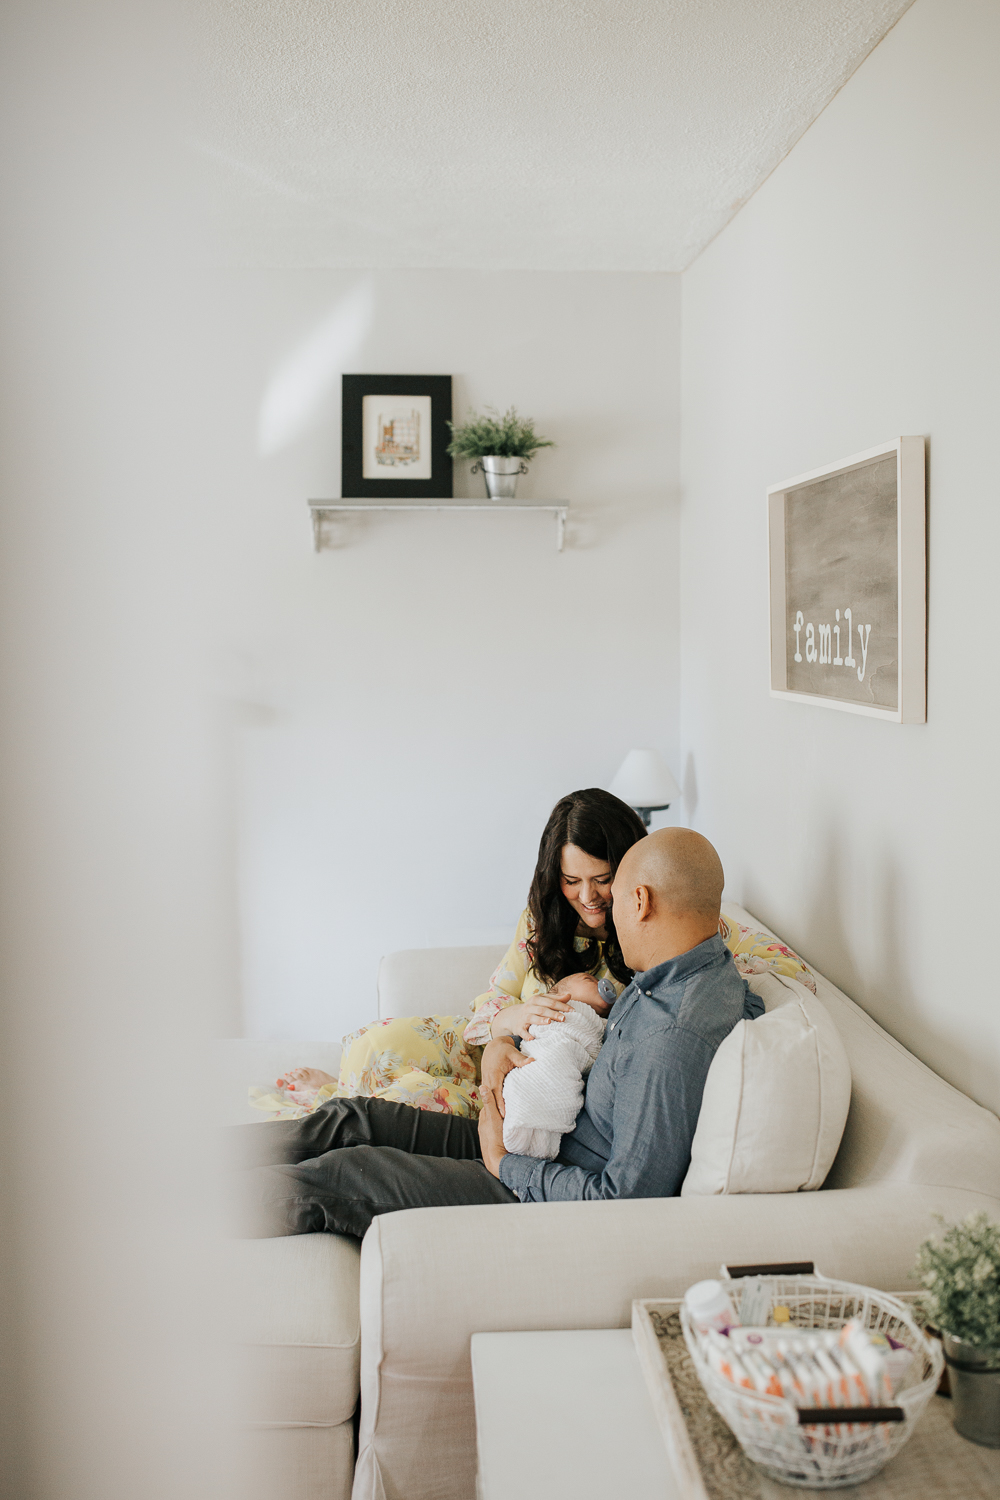 new parents sitting on couch, 3 week old baby boy in father's arms, mother smiling at son - Barrie Lifestyle Photography